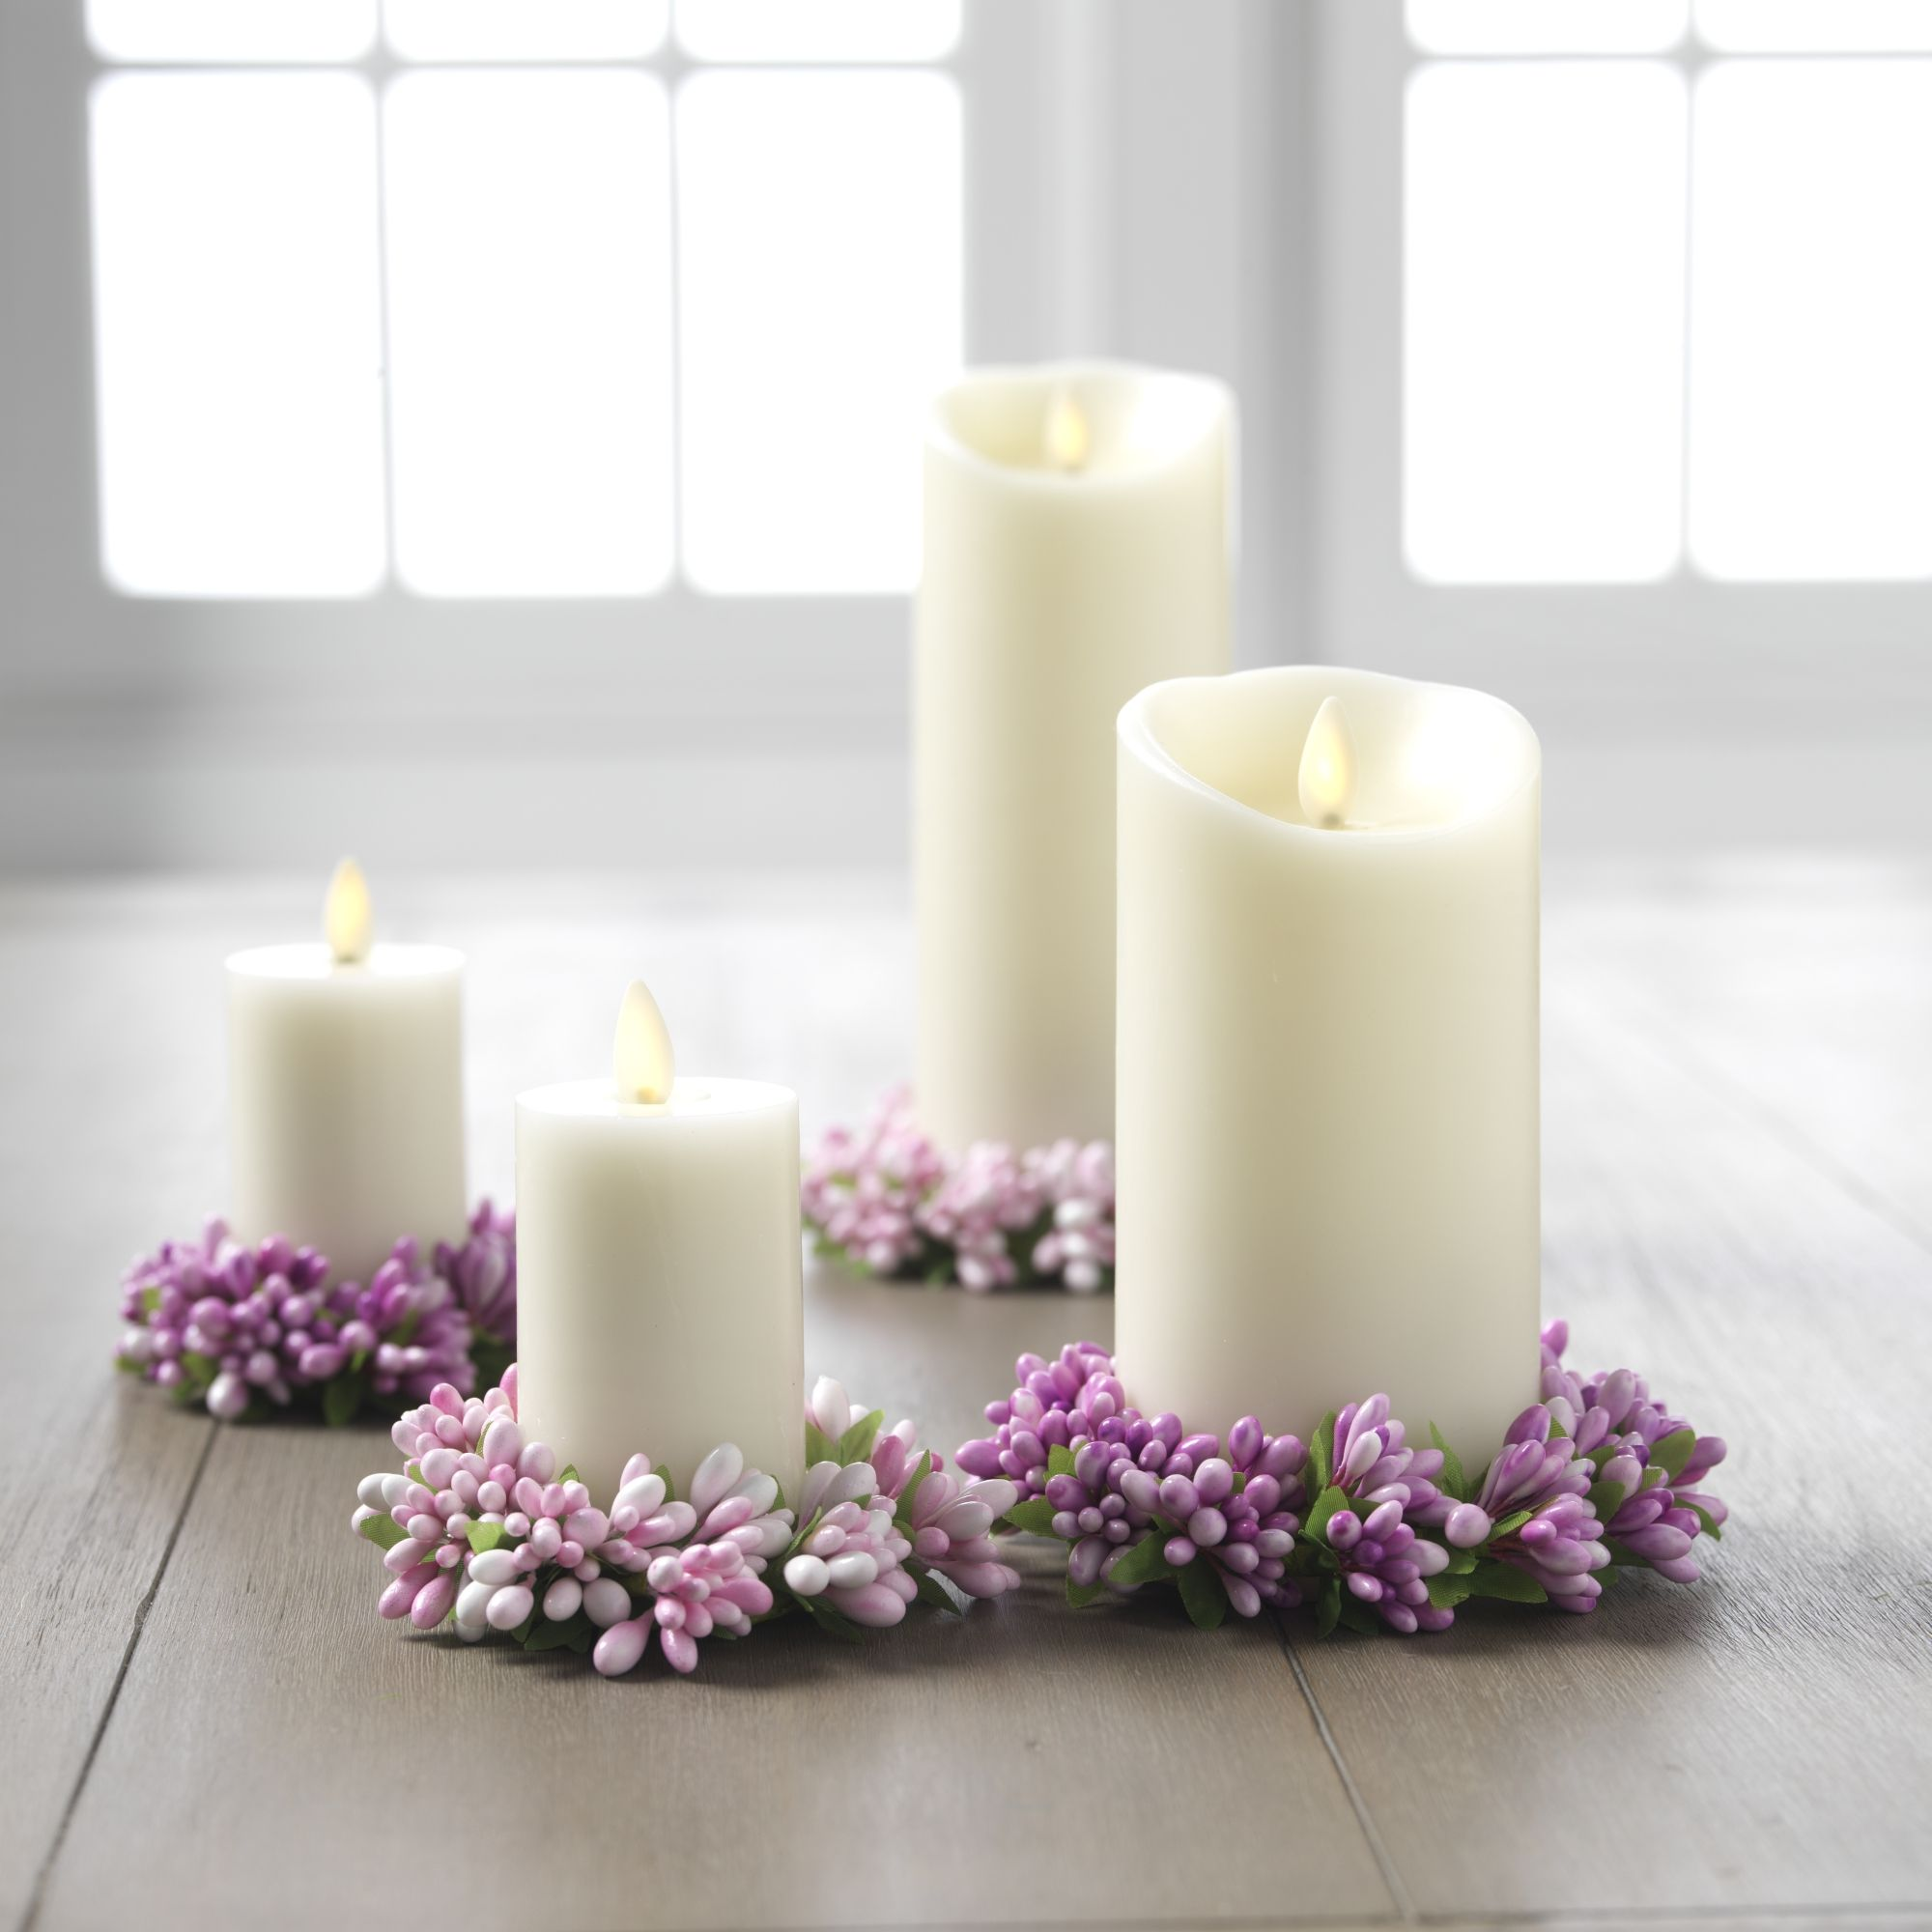 rings of with candle them kerzen candles in bella inside